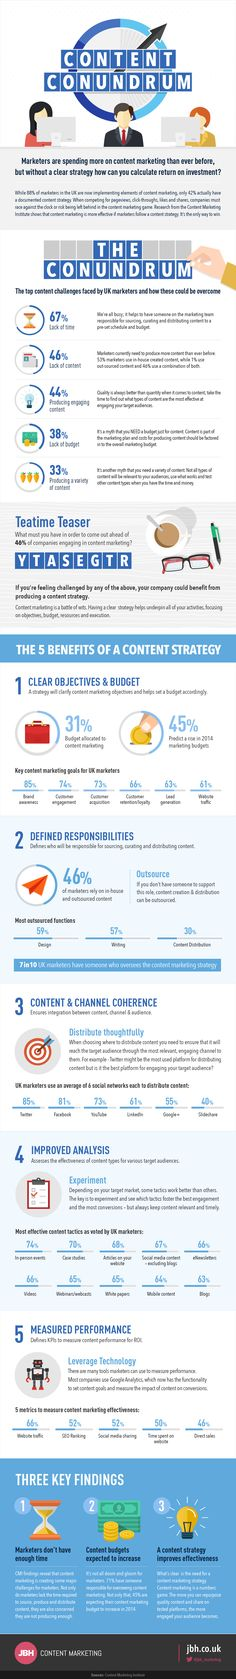 The Content Marketing Conundrum - #infographic #contentmarketing #marketing